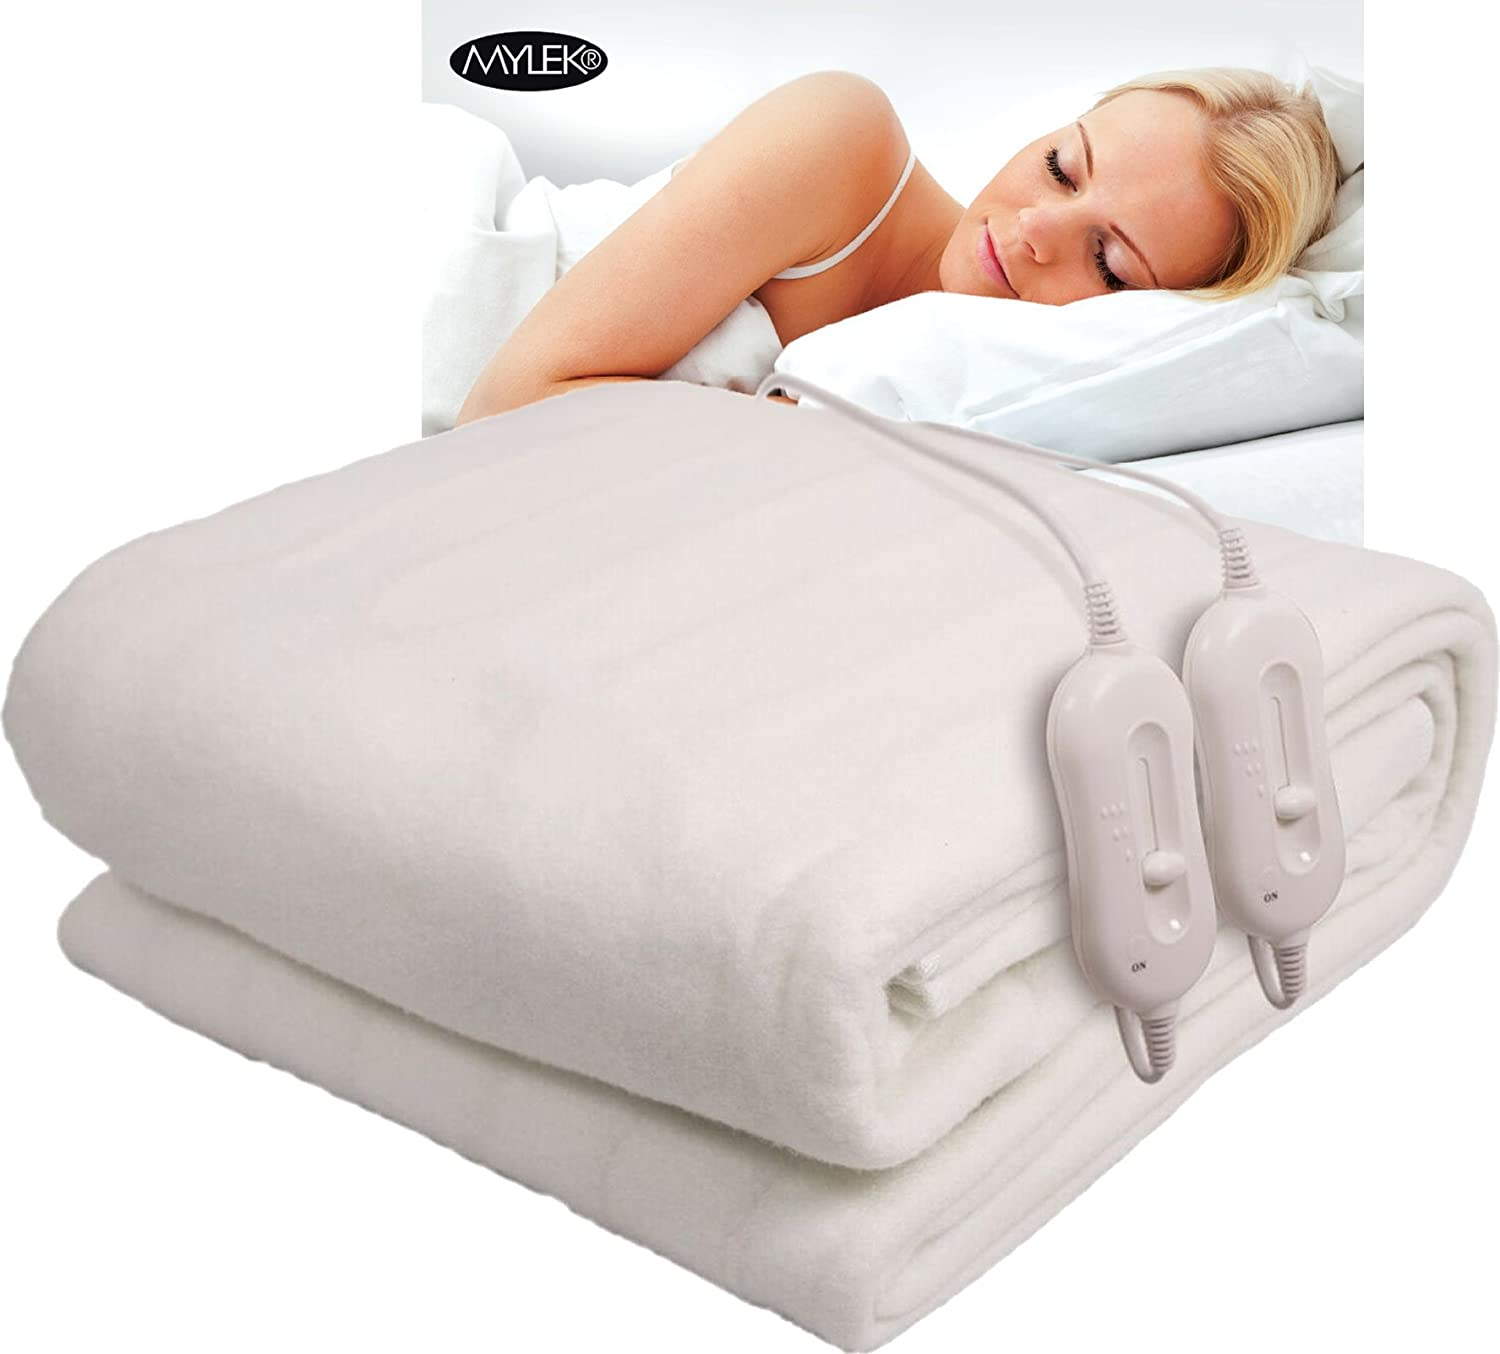 mylek electric blanket king size dual control 152 x 190 centimetres fully fitted heated mattress cover with elasticated skirt built in